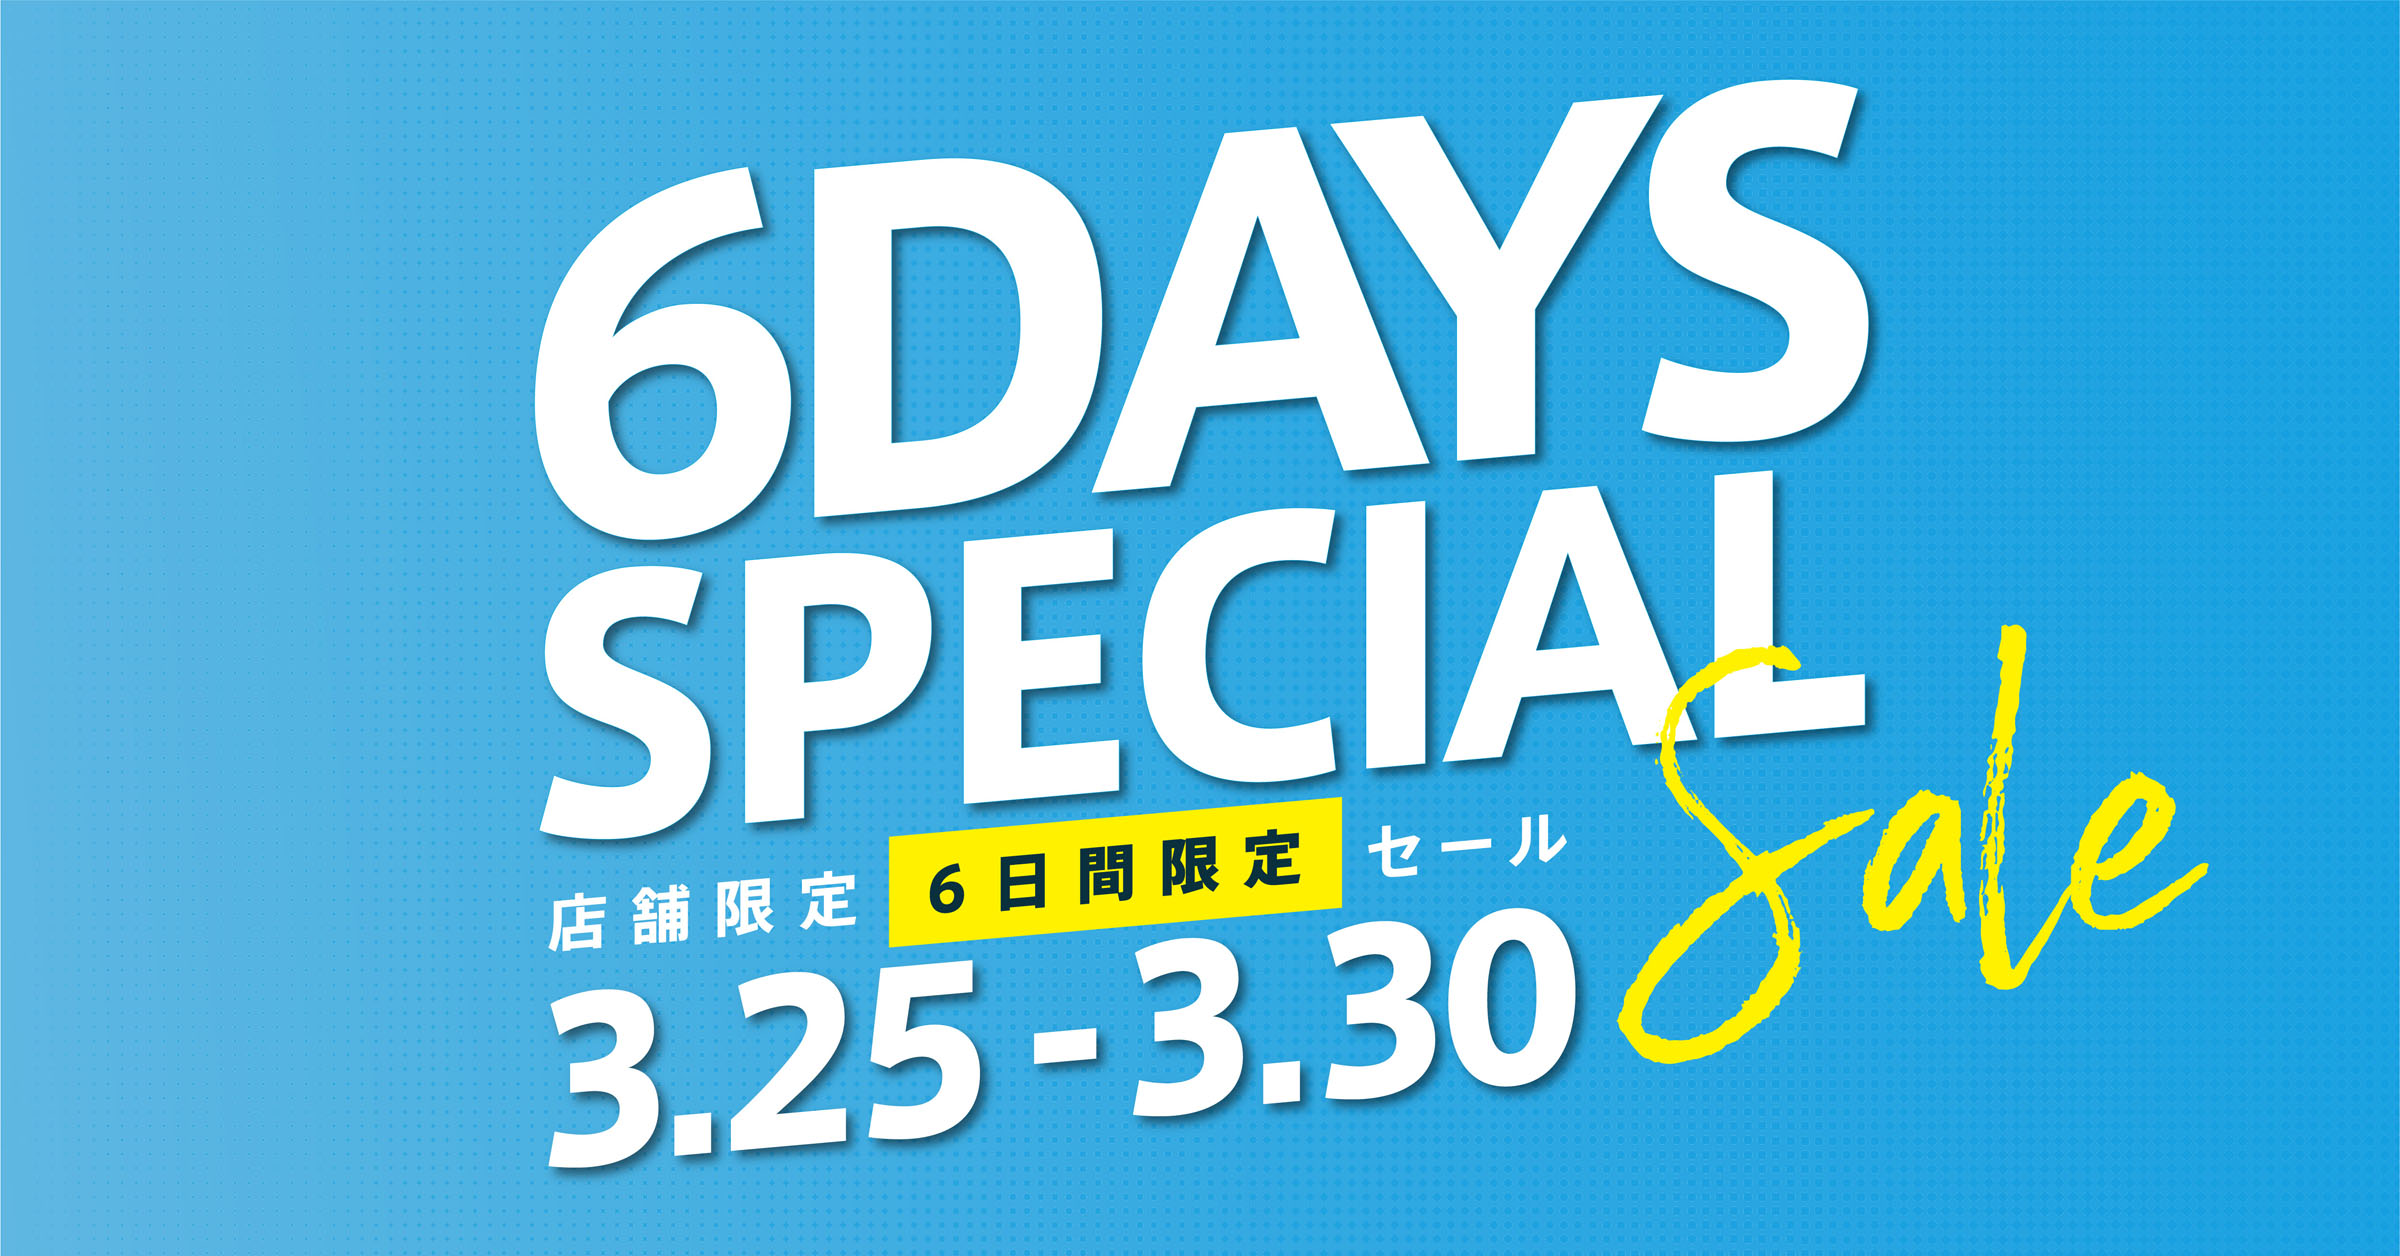 3DAYS SPECIAL SALE